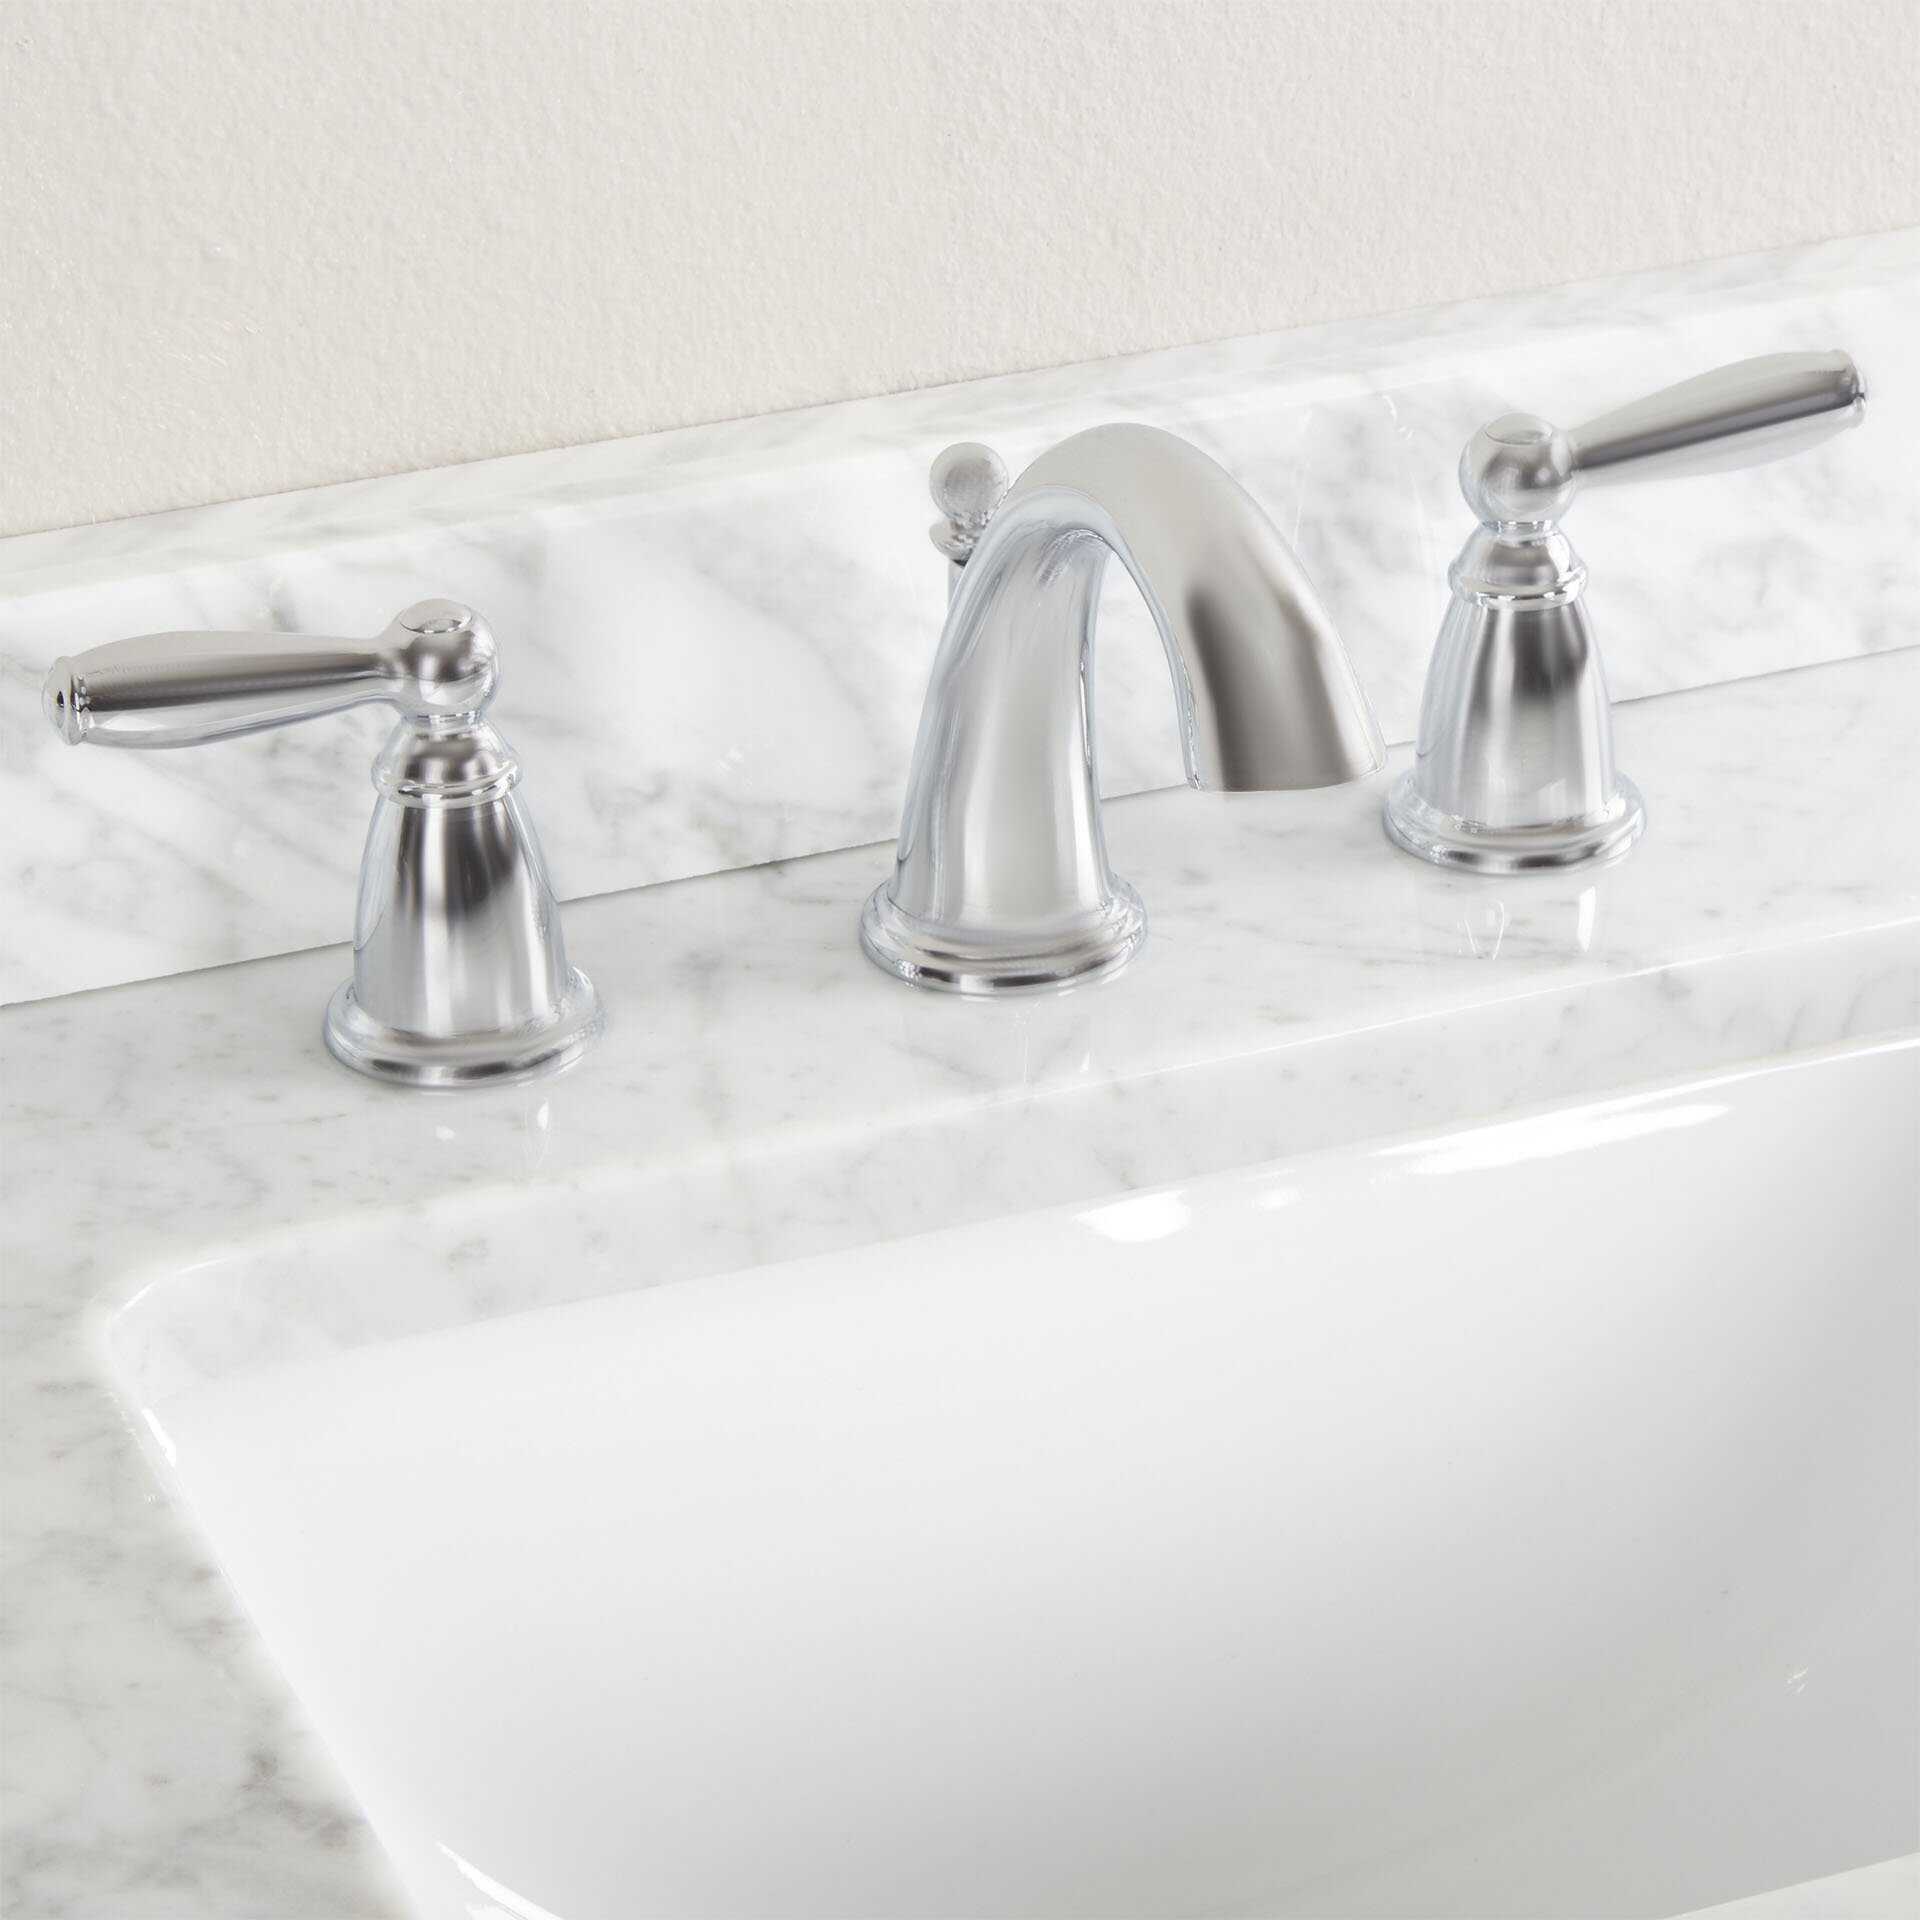 Exelent Faucet British English Pictures - Water Faucet Ideas ...